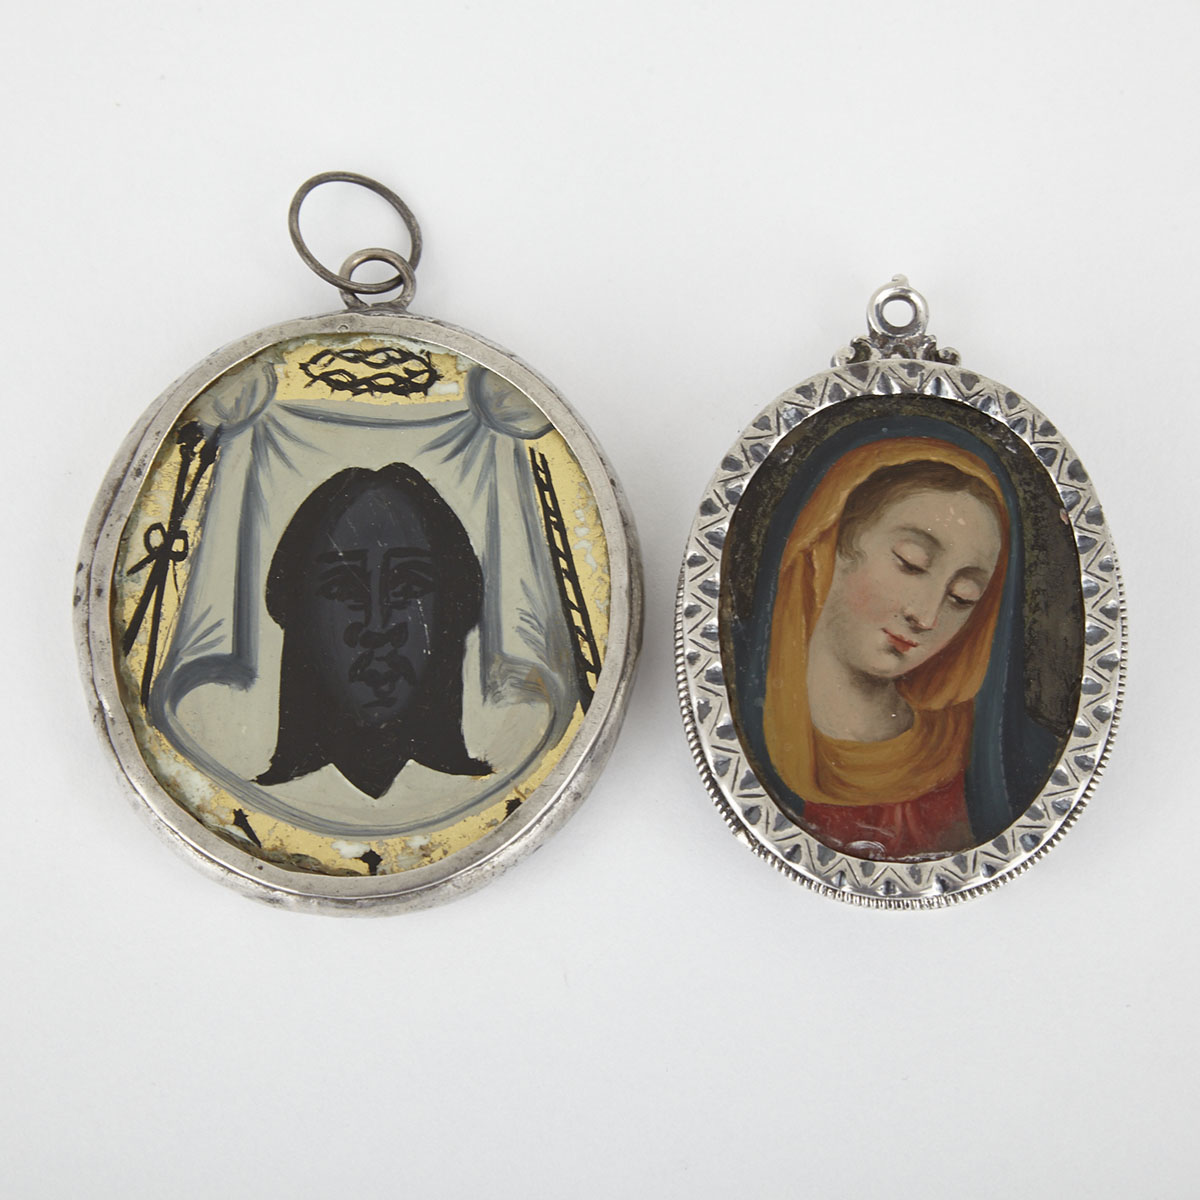 Two Spanish Provincial Silver and Reverse Painting on Glass Double Sided Pendent Icons, c.1860